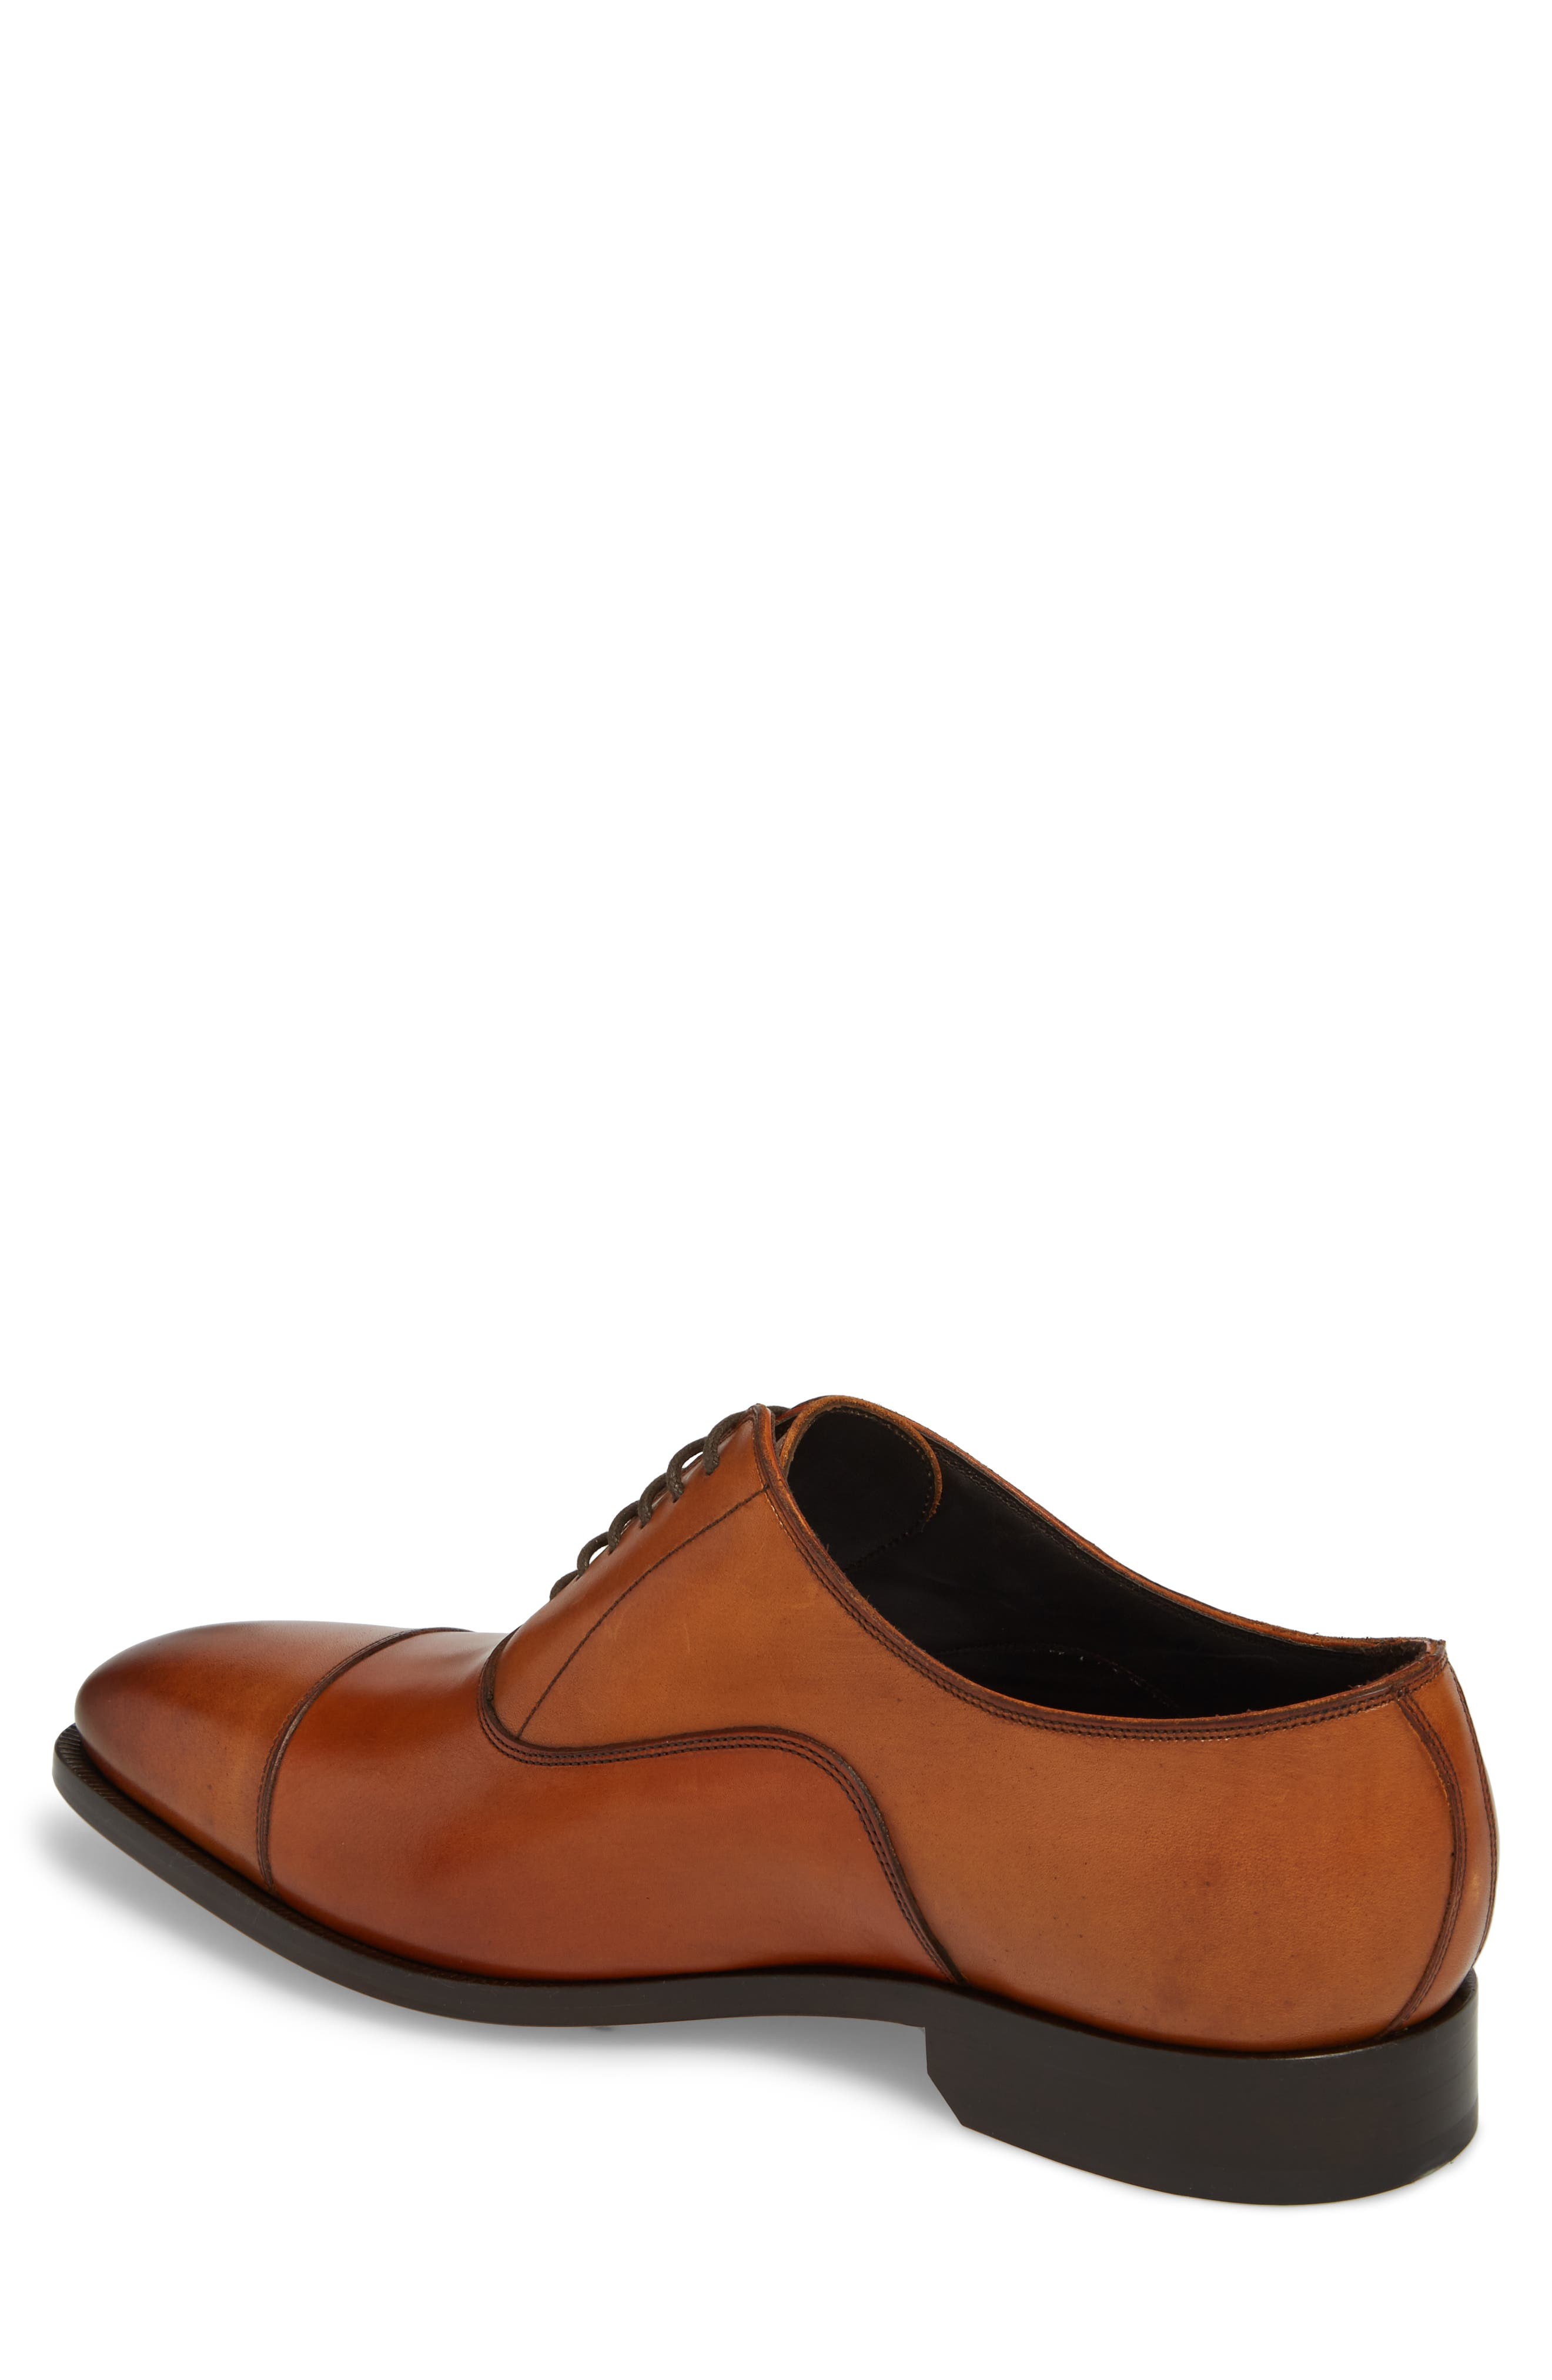 TO BOOT NEW YORK, Knoll Cap Toe Oxford, Alternate thumbnail 2, color, COGNAC LEATHER